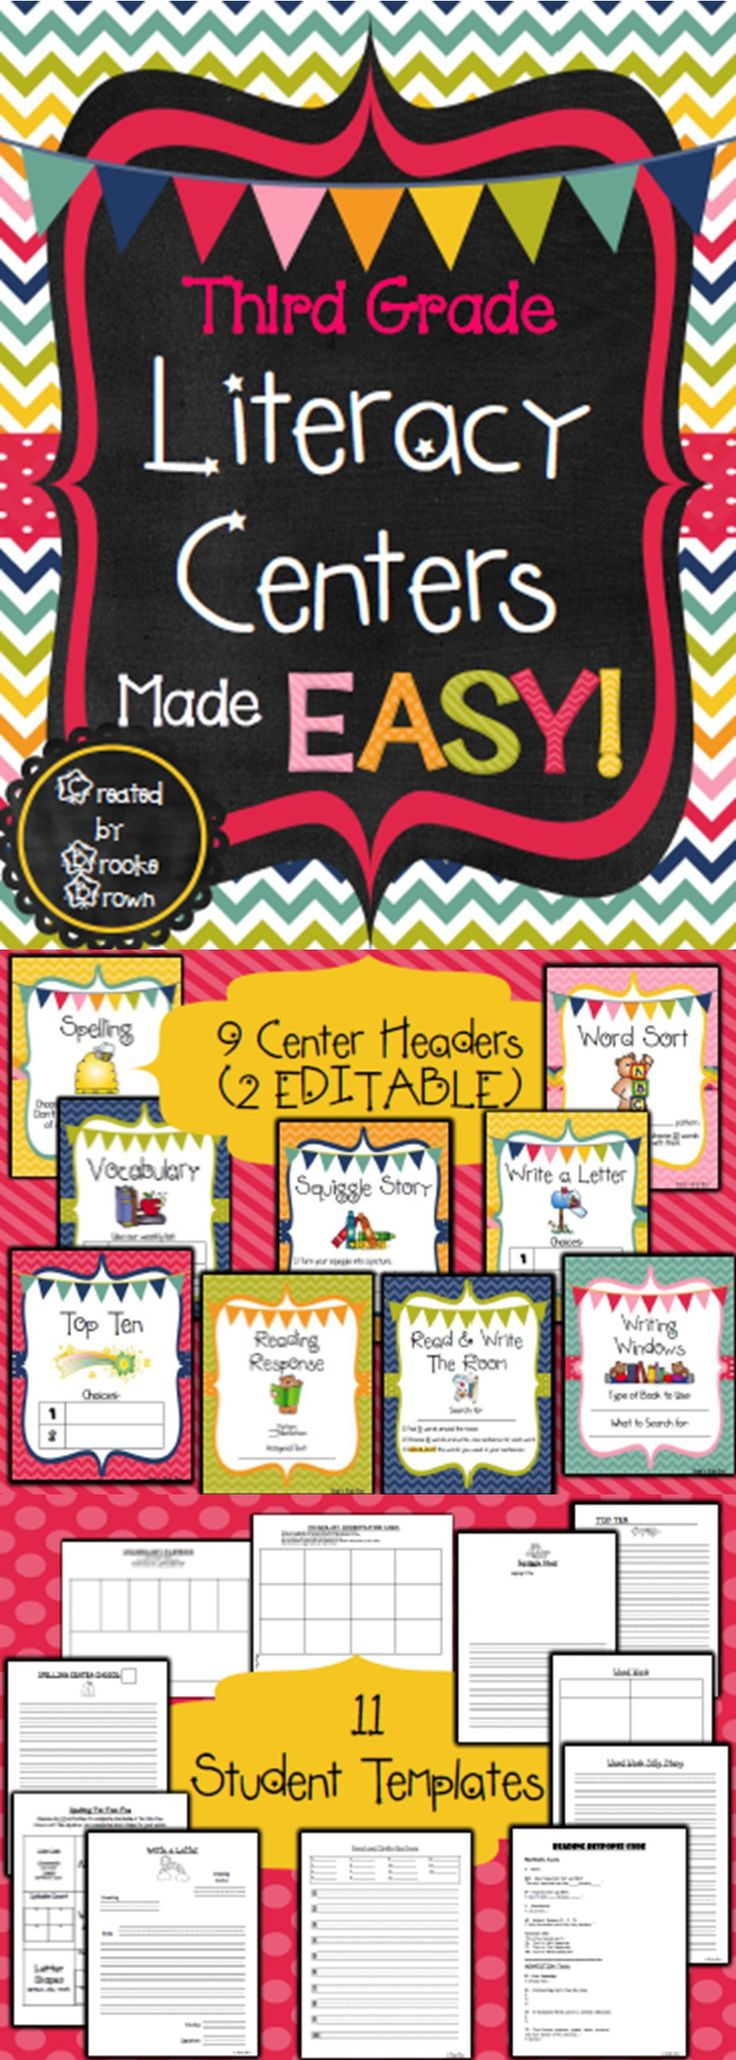 *NEW DESIGN!* Third Grade Literacy Centers Made EASY!